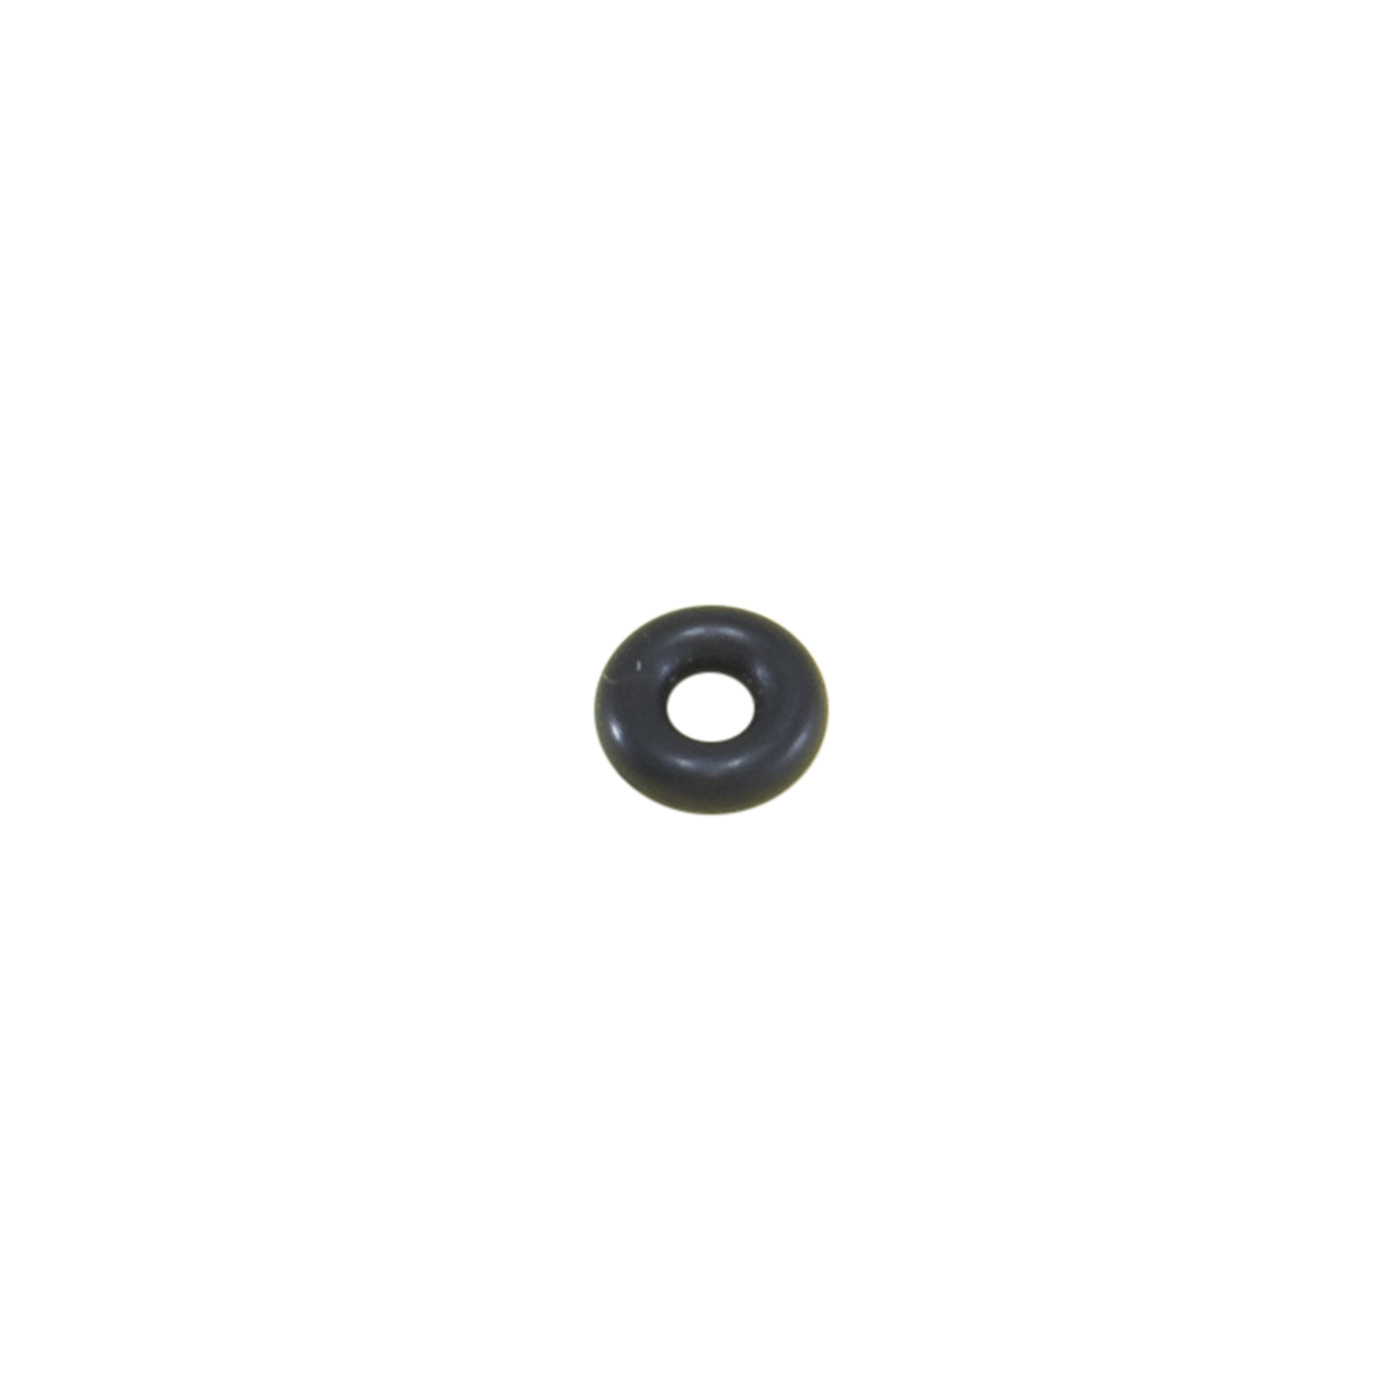 YZLAO-05 - O-ring for Yukon Zip Locker Bulkhead fitting kit